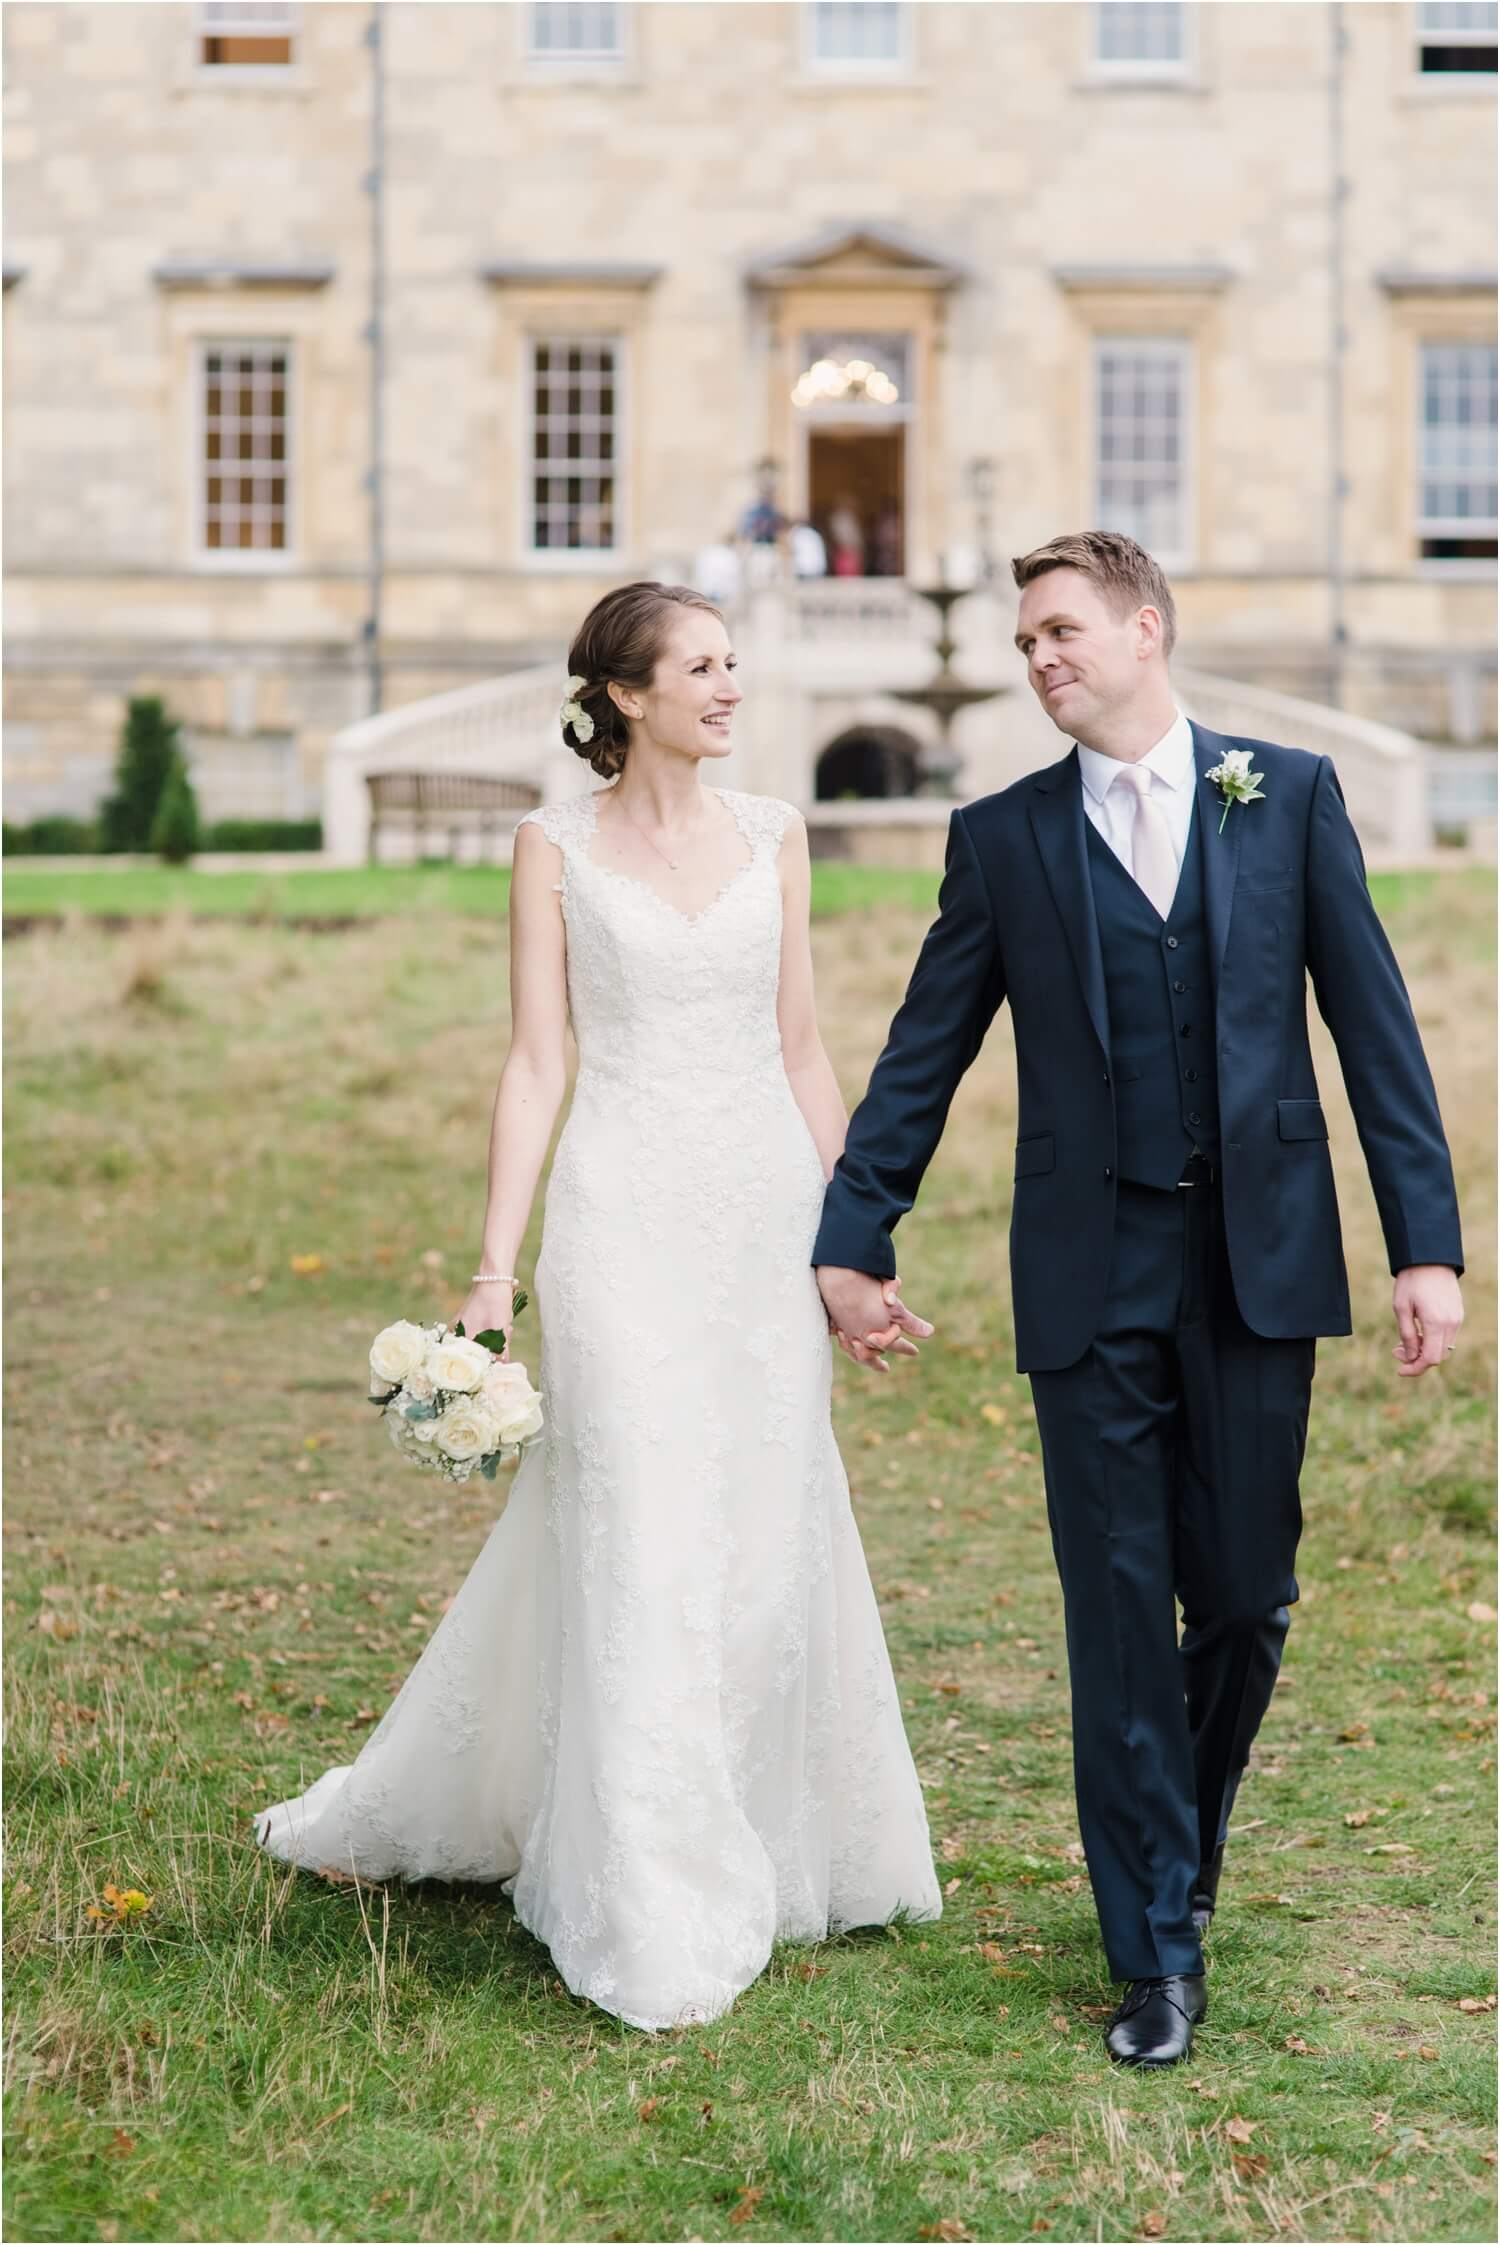 Botleys Mansion Wedding Photographer - Luxury Wedding Photographer - Film Photographer